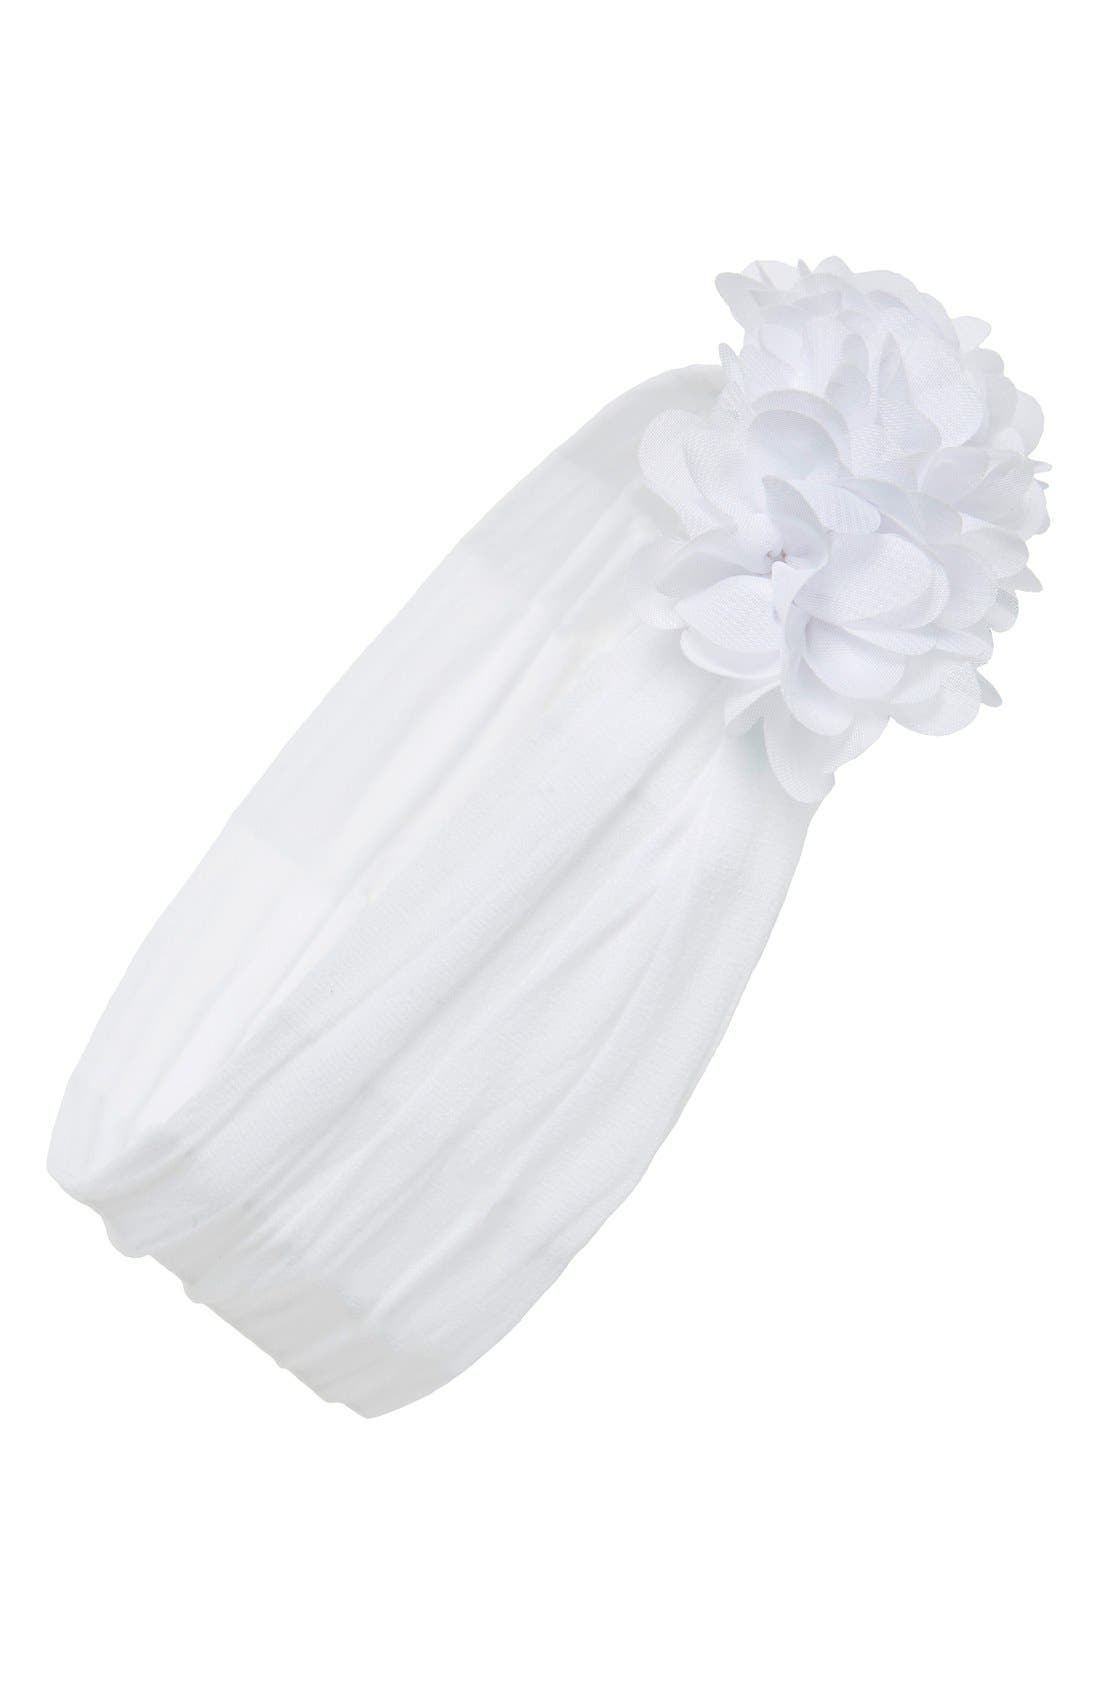 Chiffon Ruffle Headband,                             Main thumbnail 1, color,                             WHITE